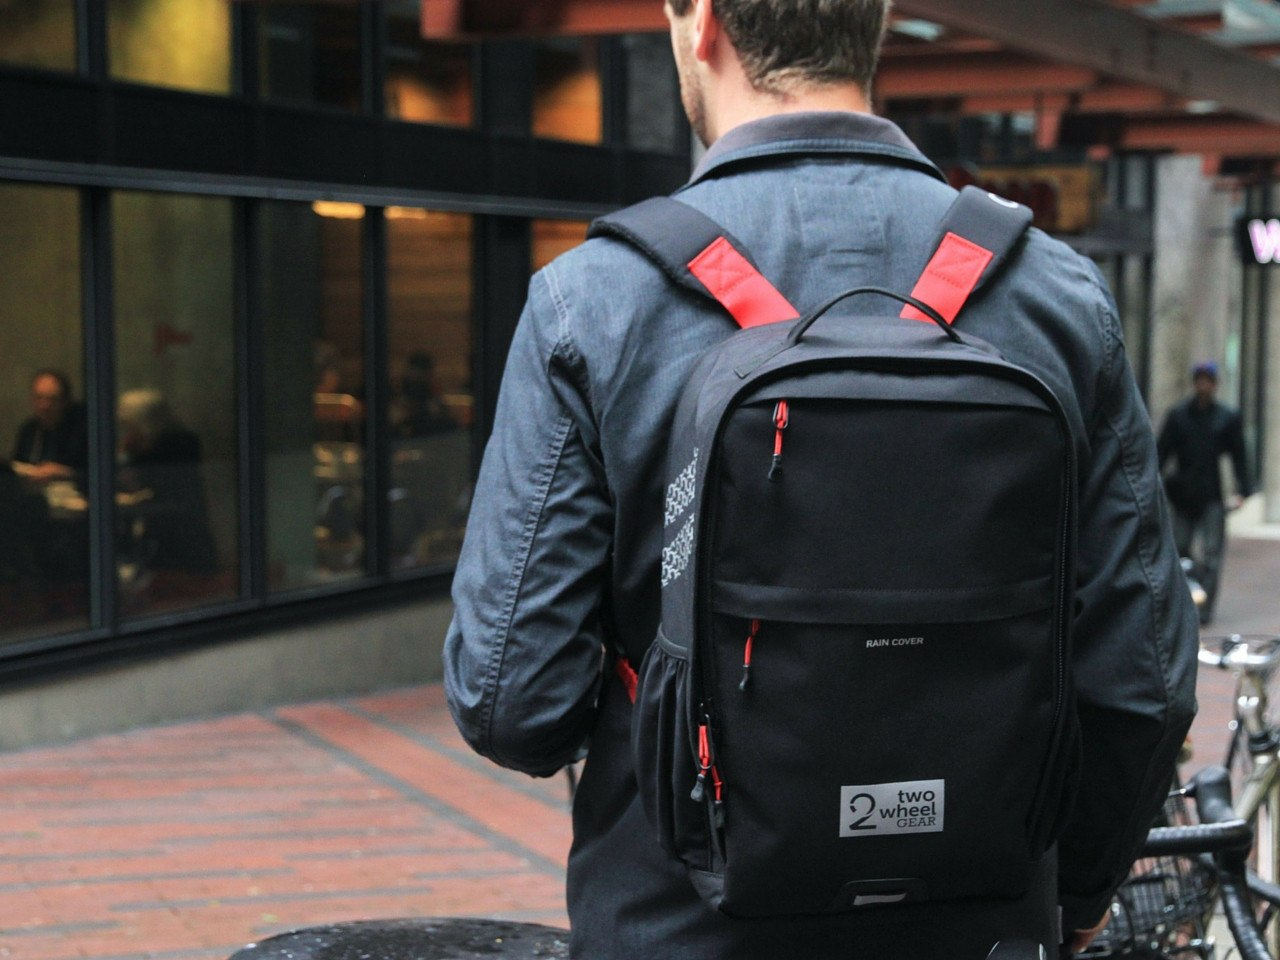 Black Pannier Backpack Convertible on Man with Coffee - Two Wheel Gear